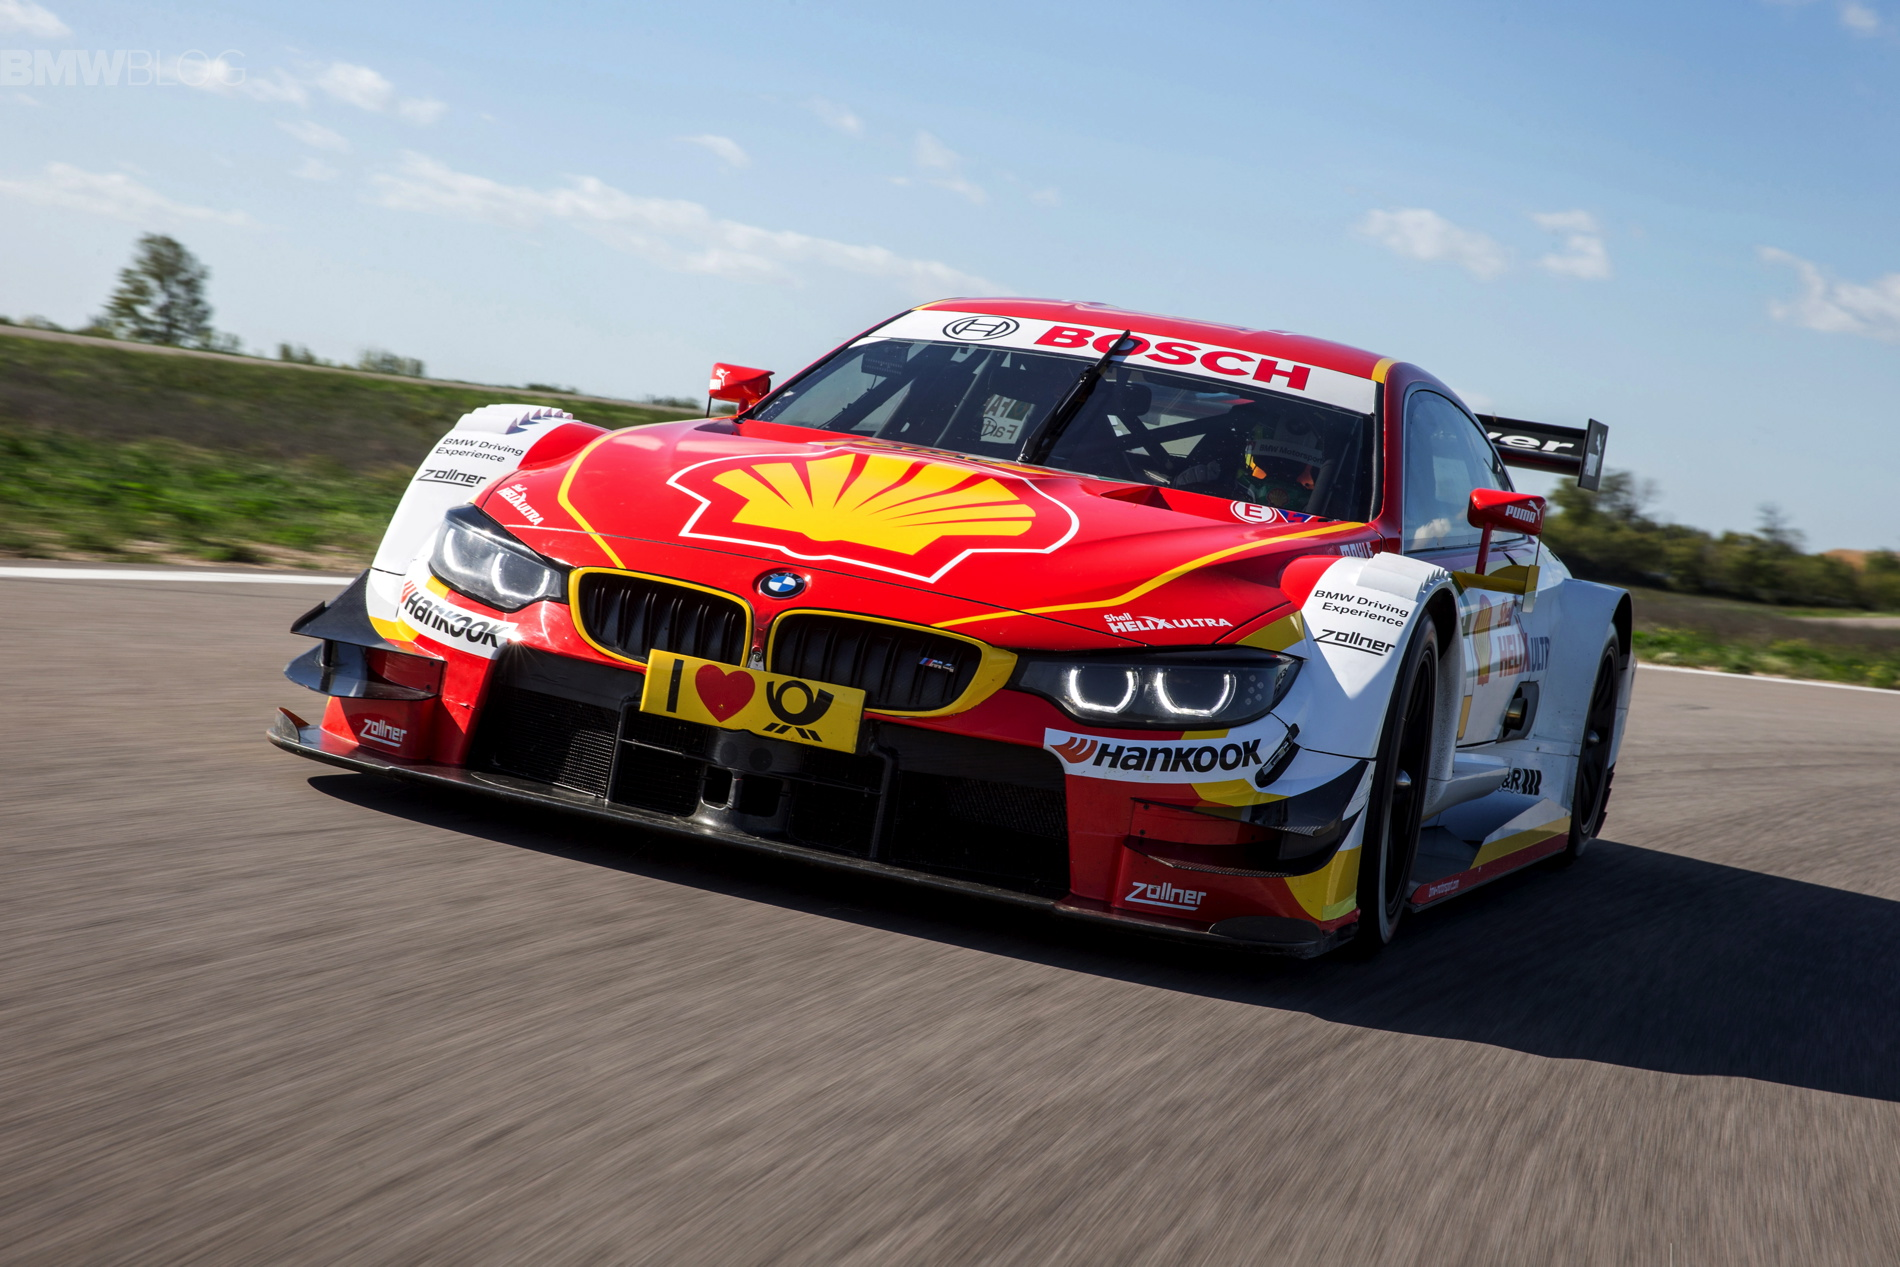 shell bmw dtm 02